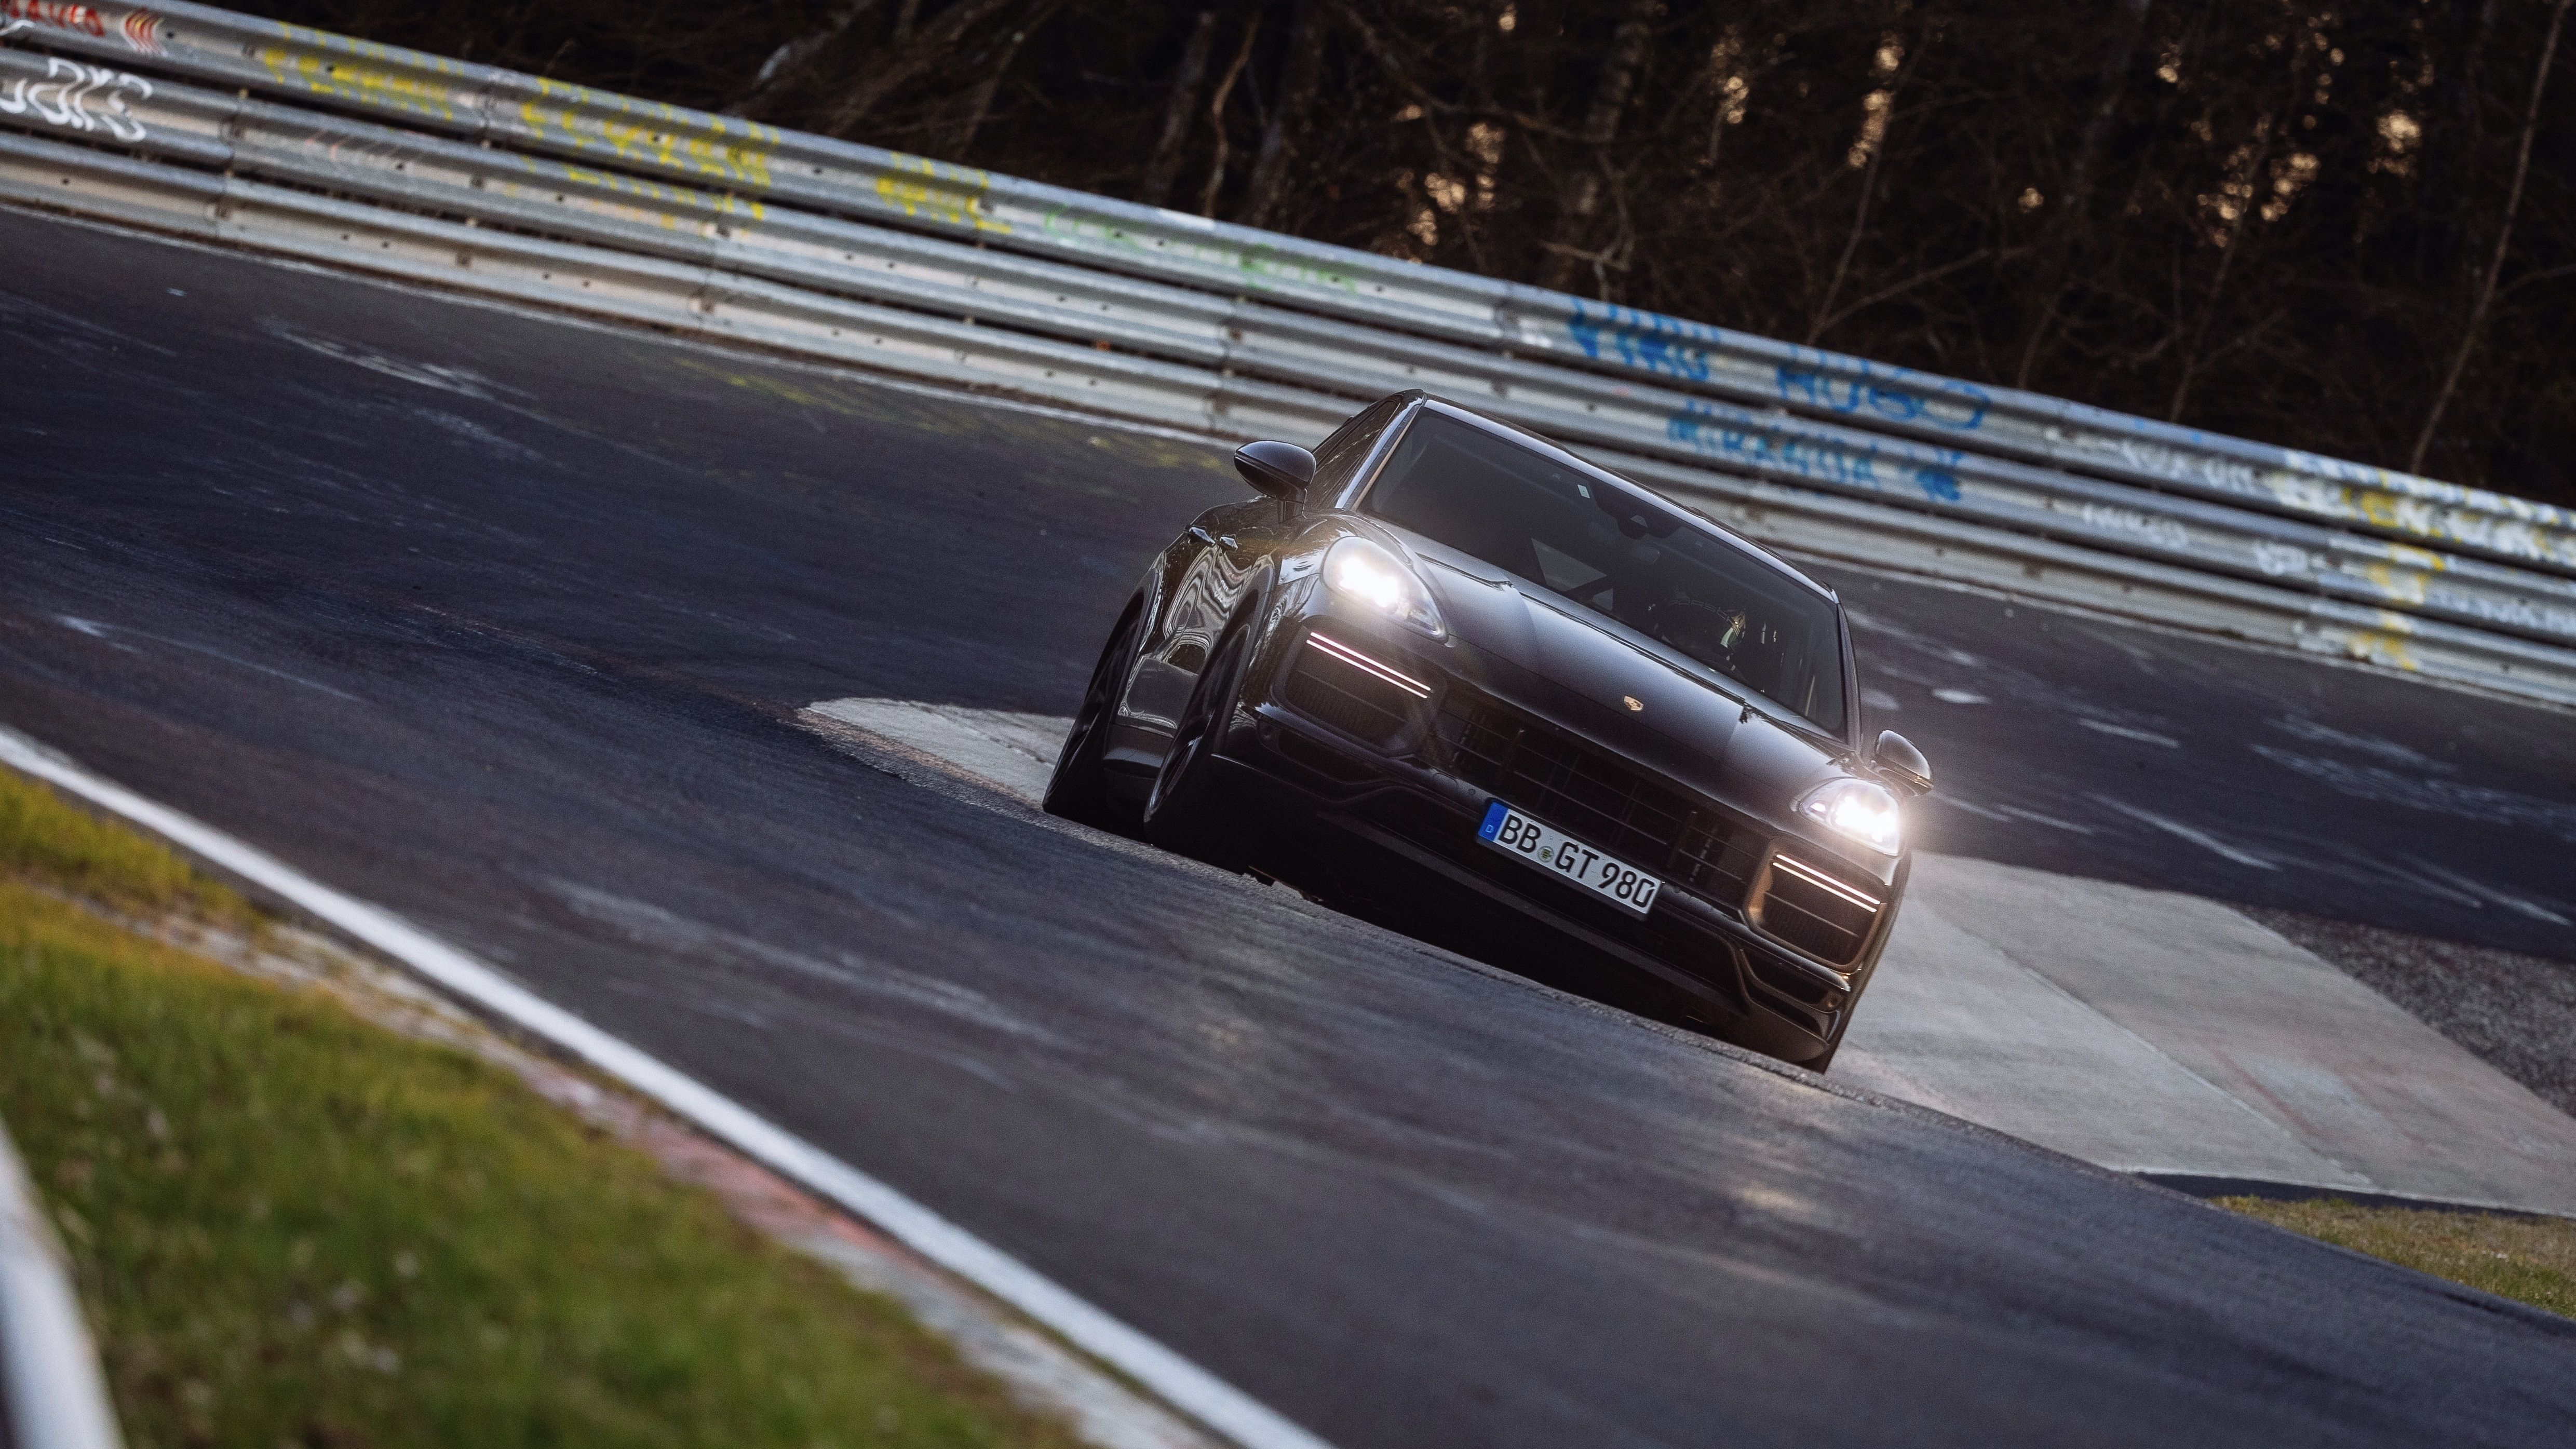 Porsche's New Cayenne Turbo Variant Just Broke the Nürburgring Lap Record for SUVs